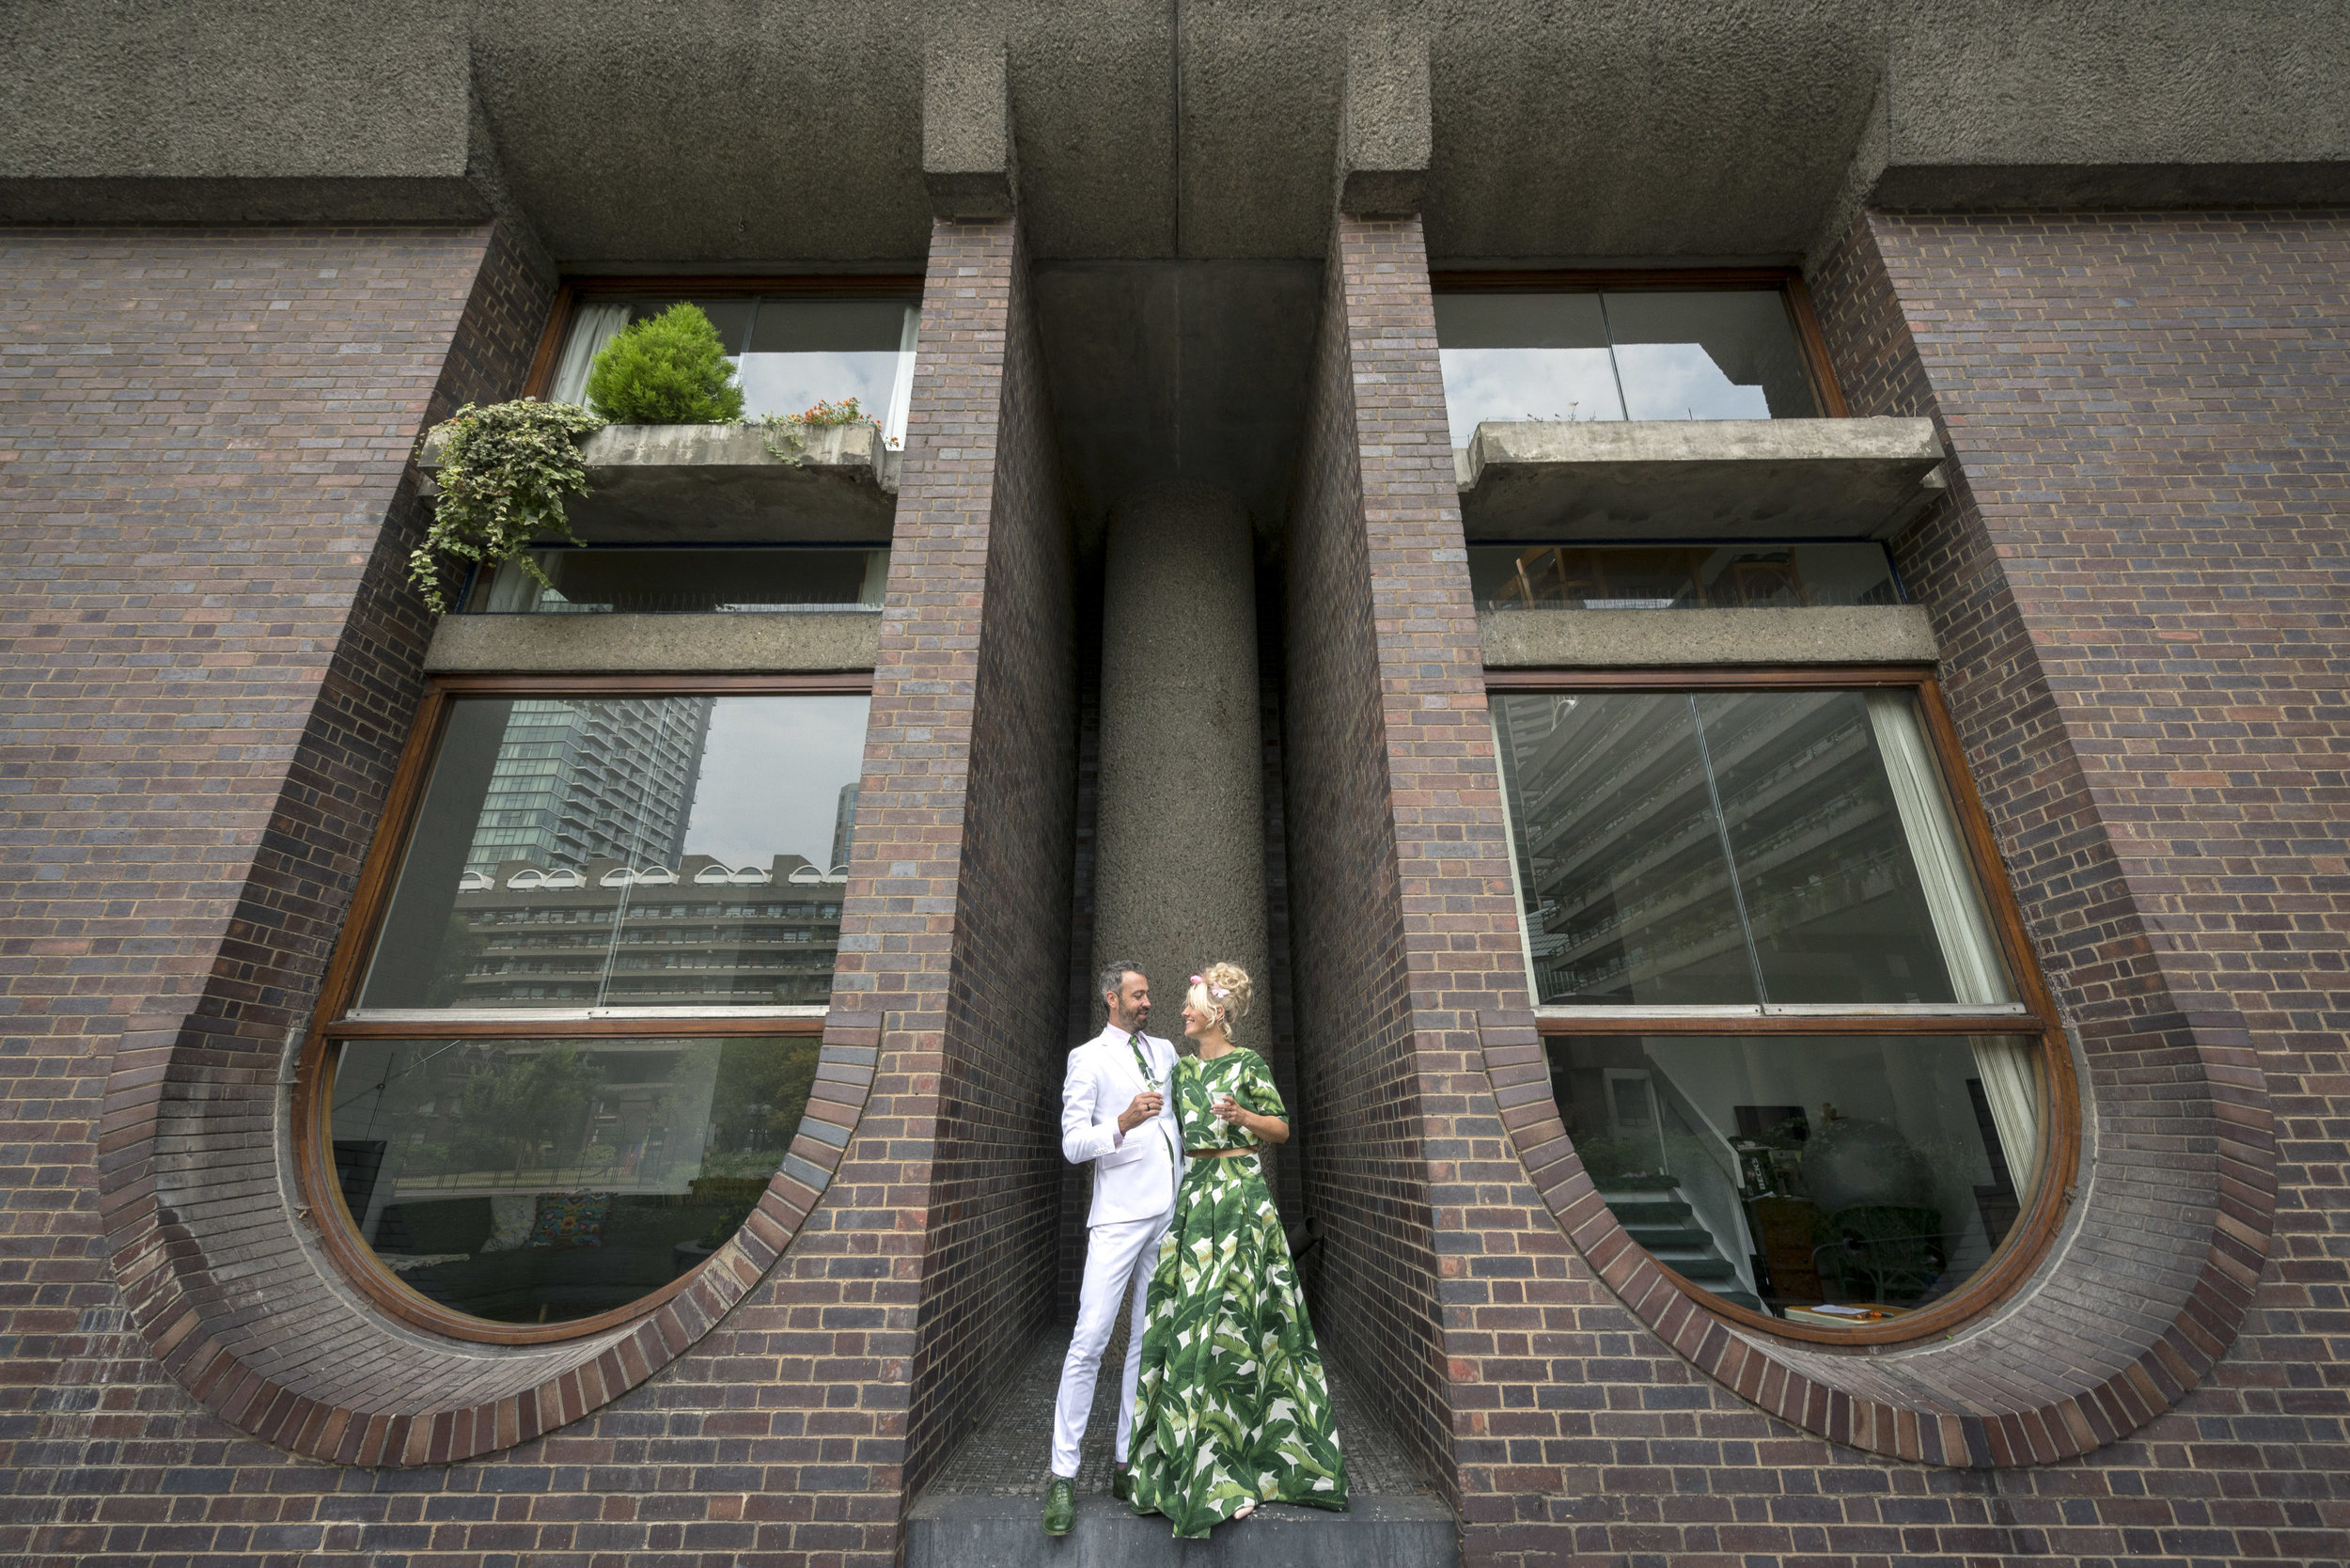 barbican-wedding-10.jpg